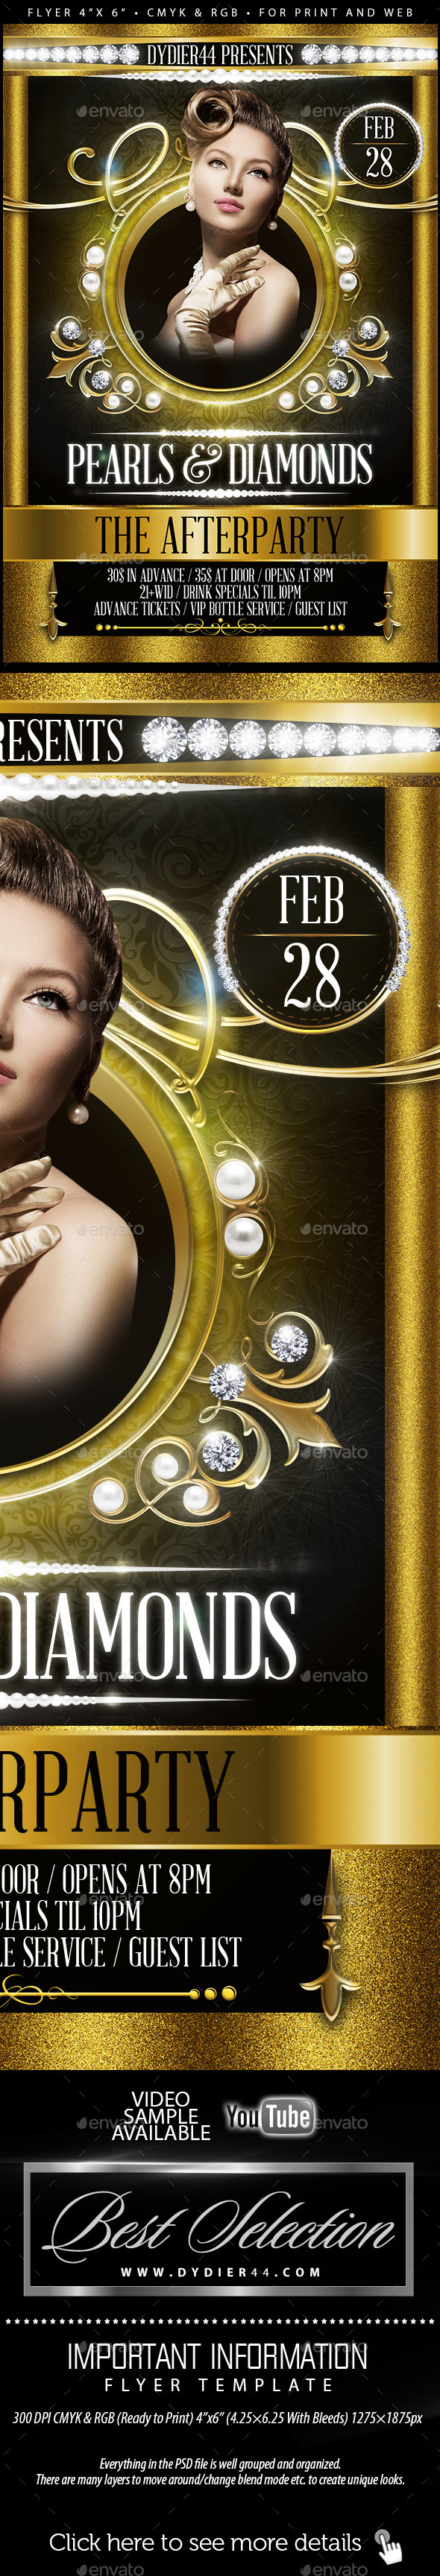 Pearls & Diamonds  (Flyer Template 4x6) - Clubs & Parties Events